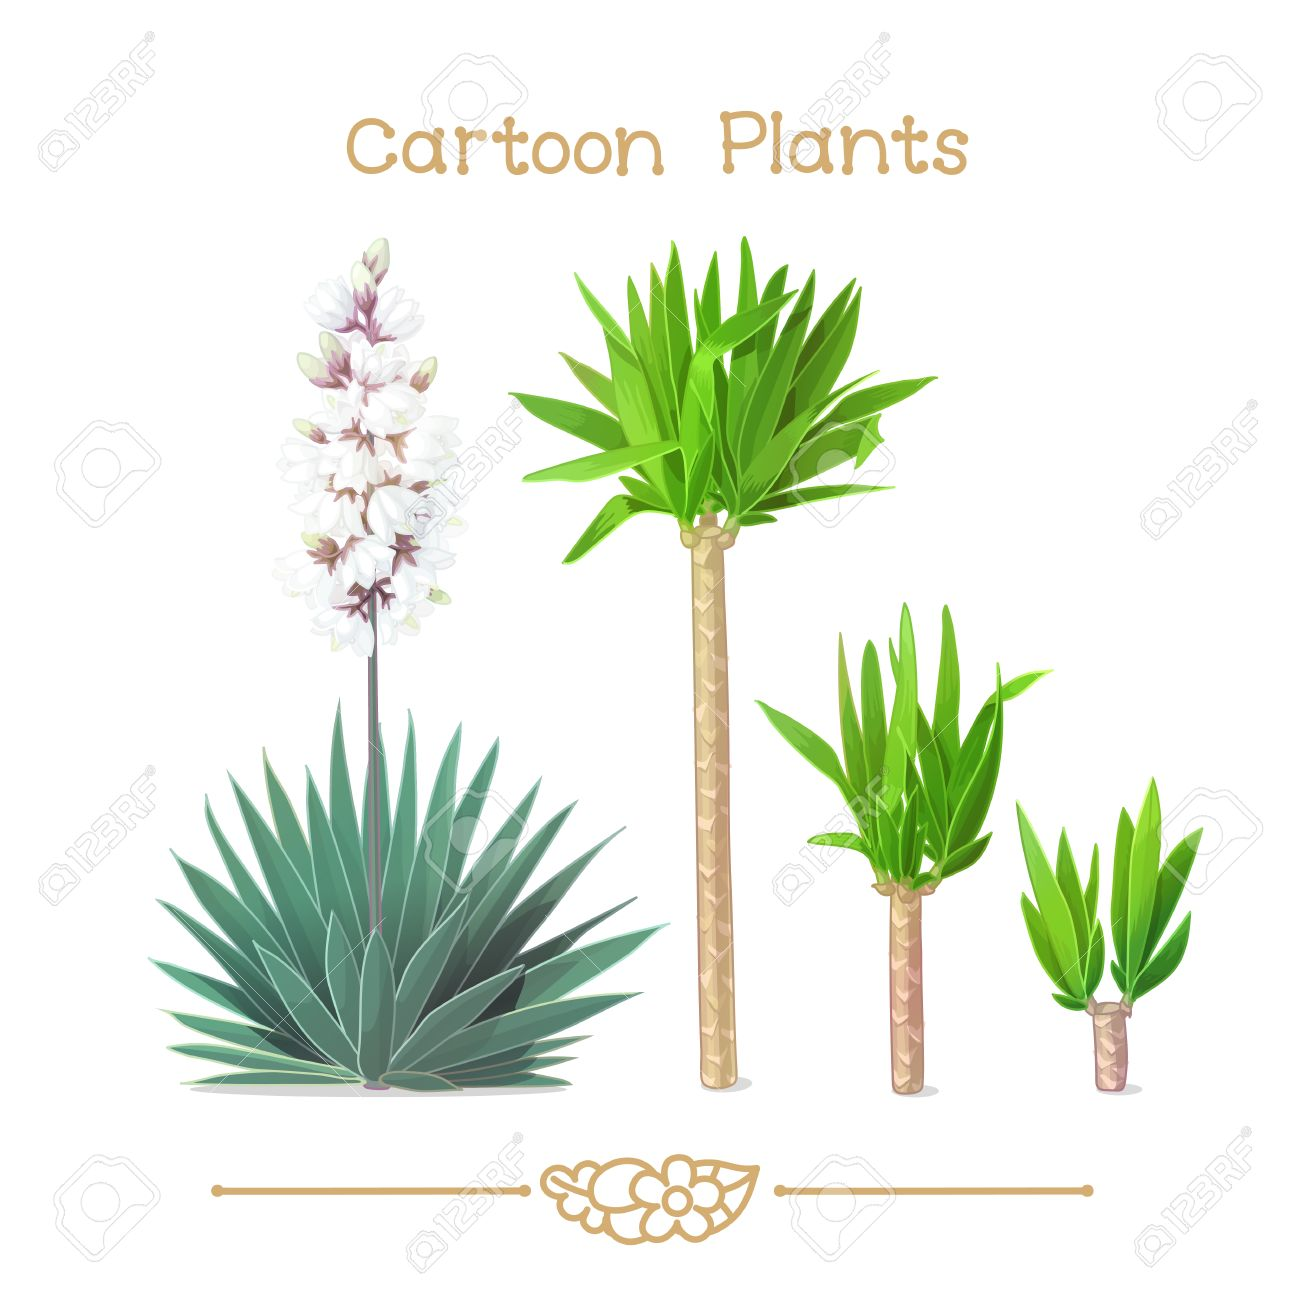 Illustration collection Cartoon Plants. Young shoots of yucca.